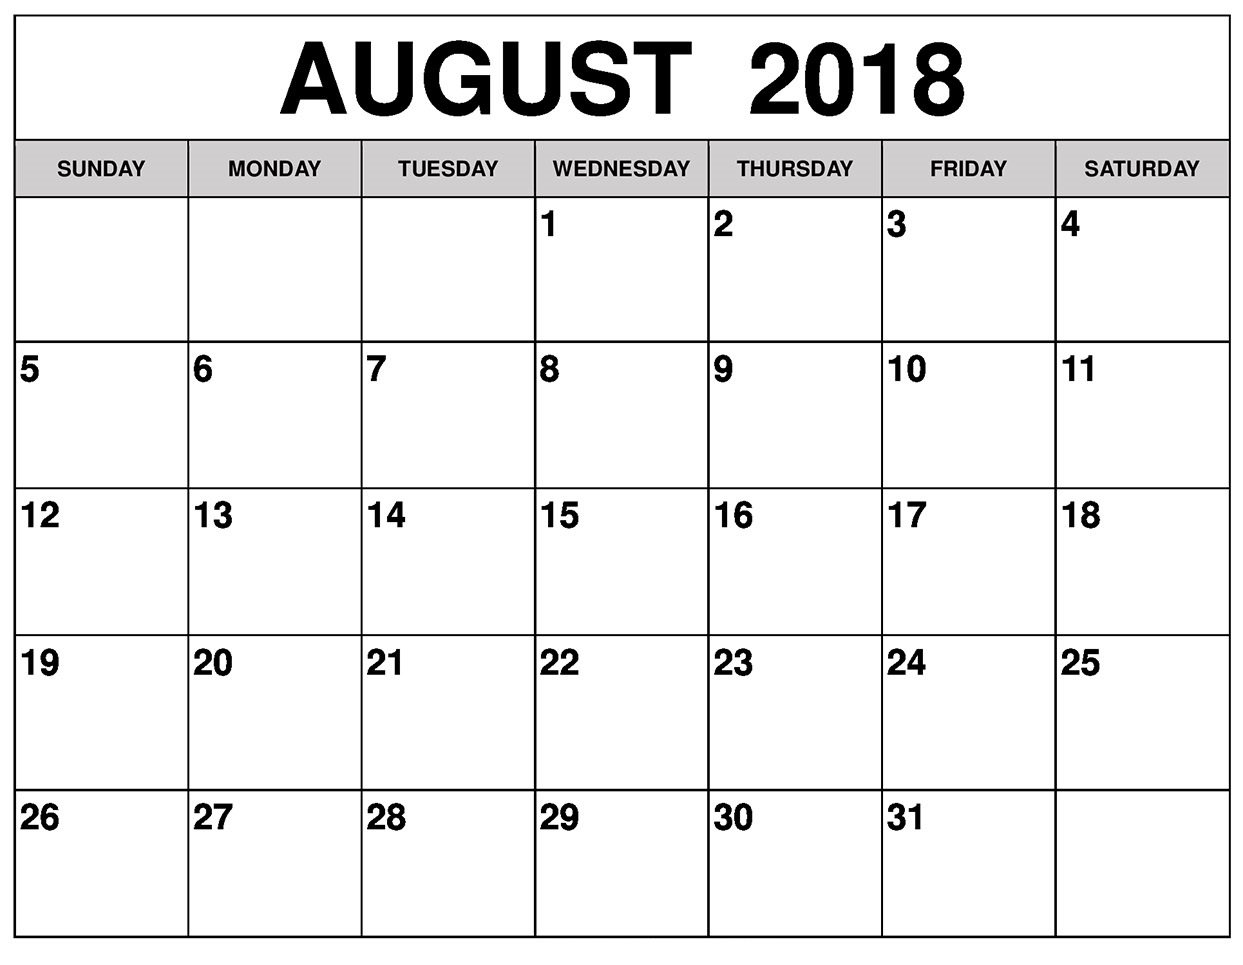 August Calendar 2018 With Holidays